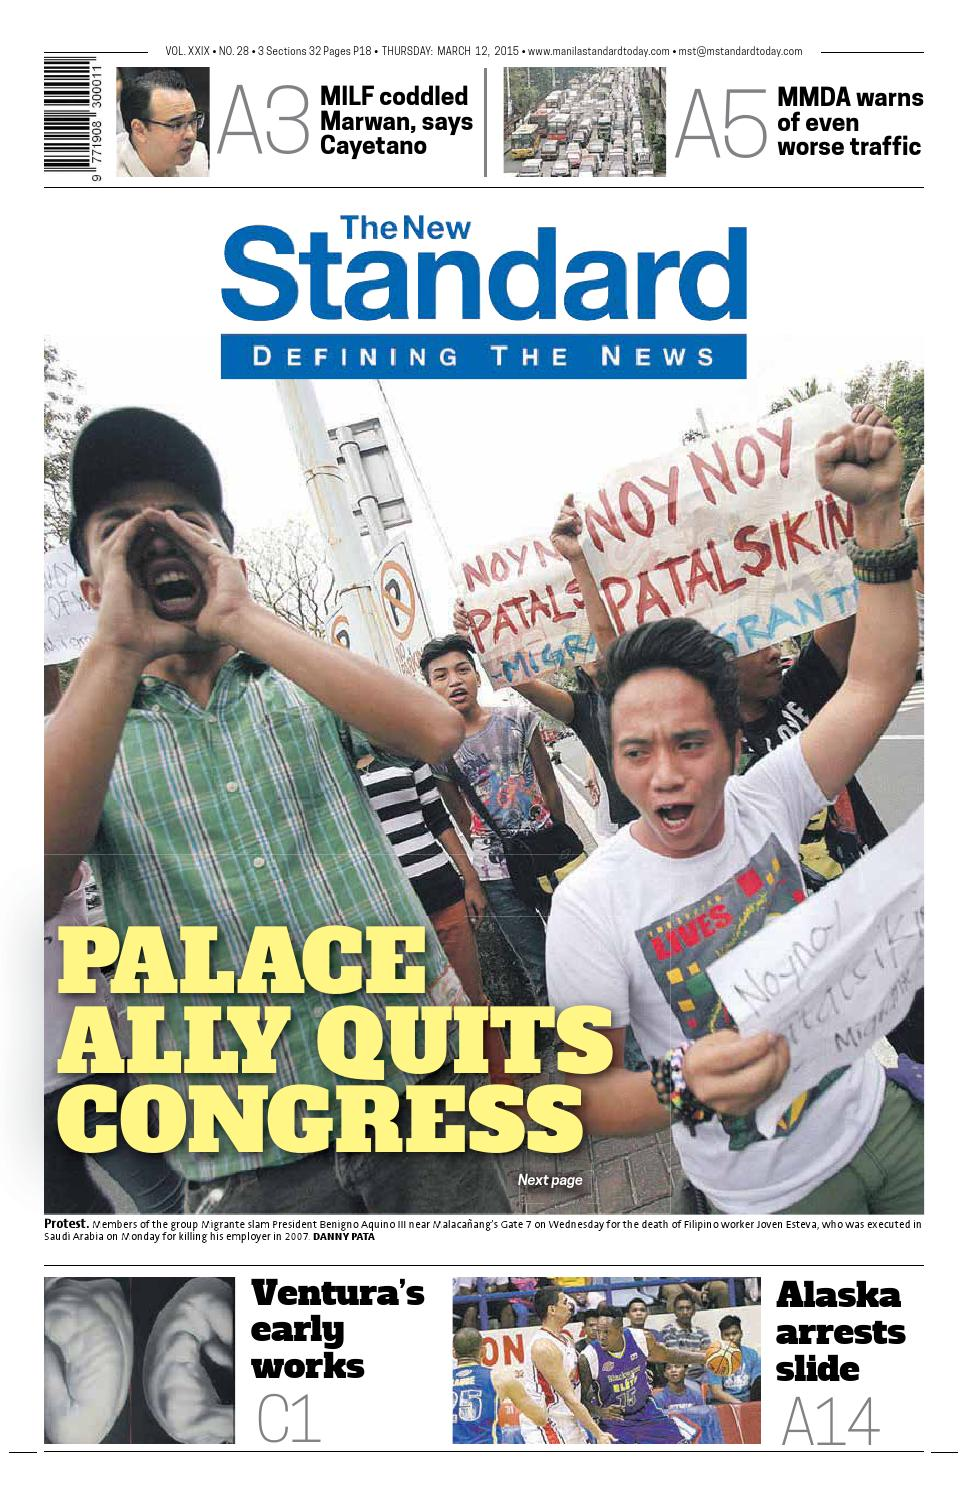 The Standard - 2015 March 12 - Thursday